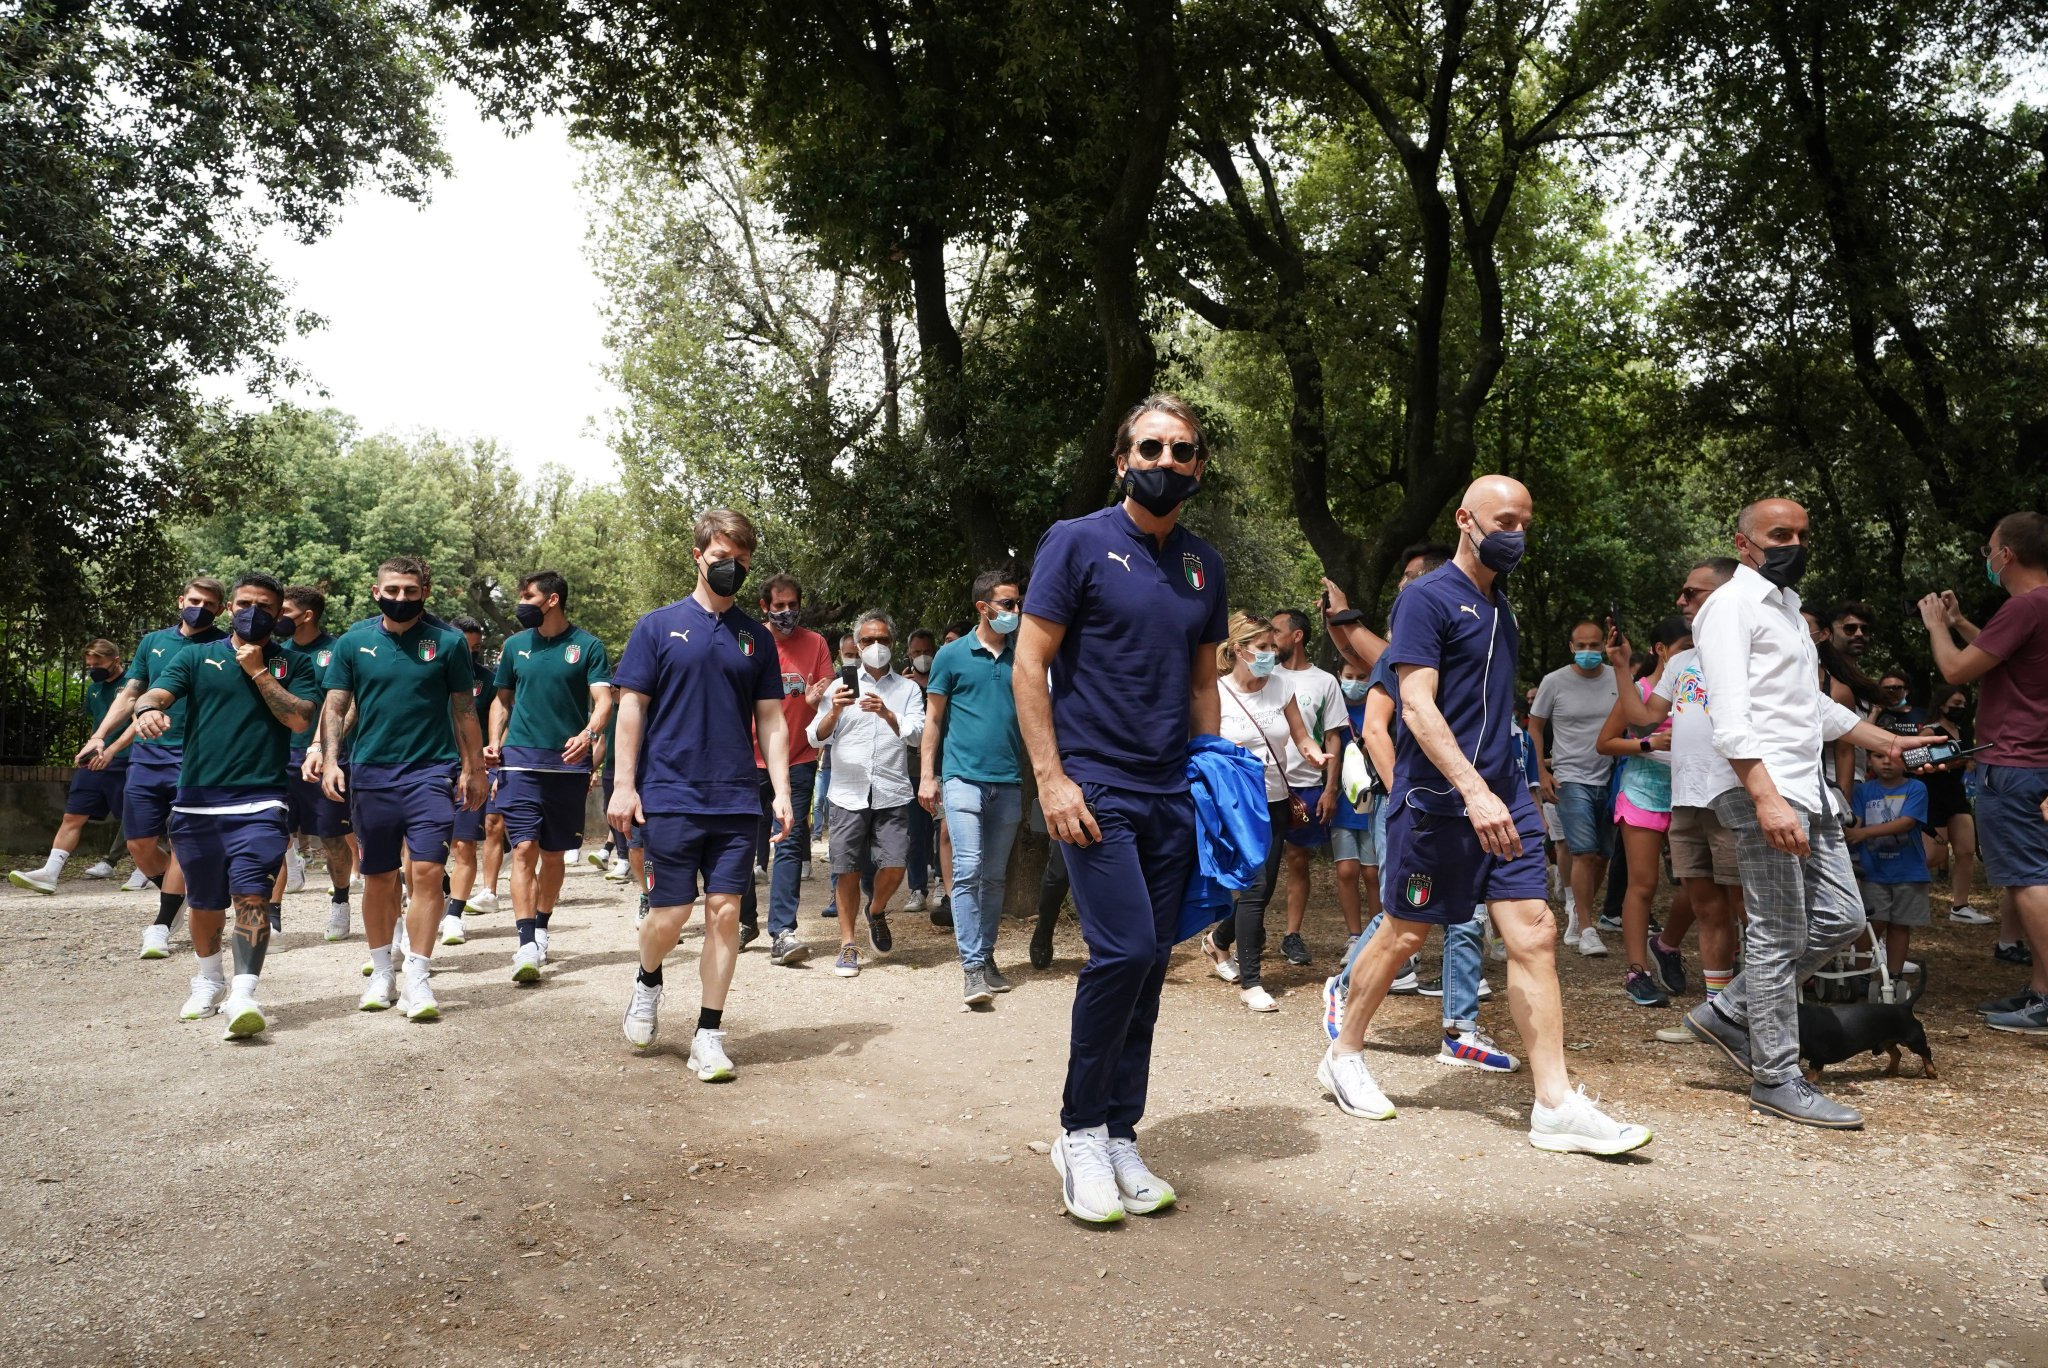 Italy players are arriving at the venue. (Image courtesy: Italy official Twitter handle)